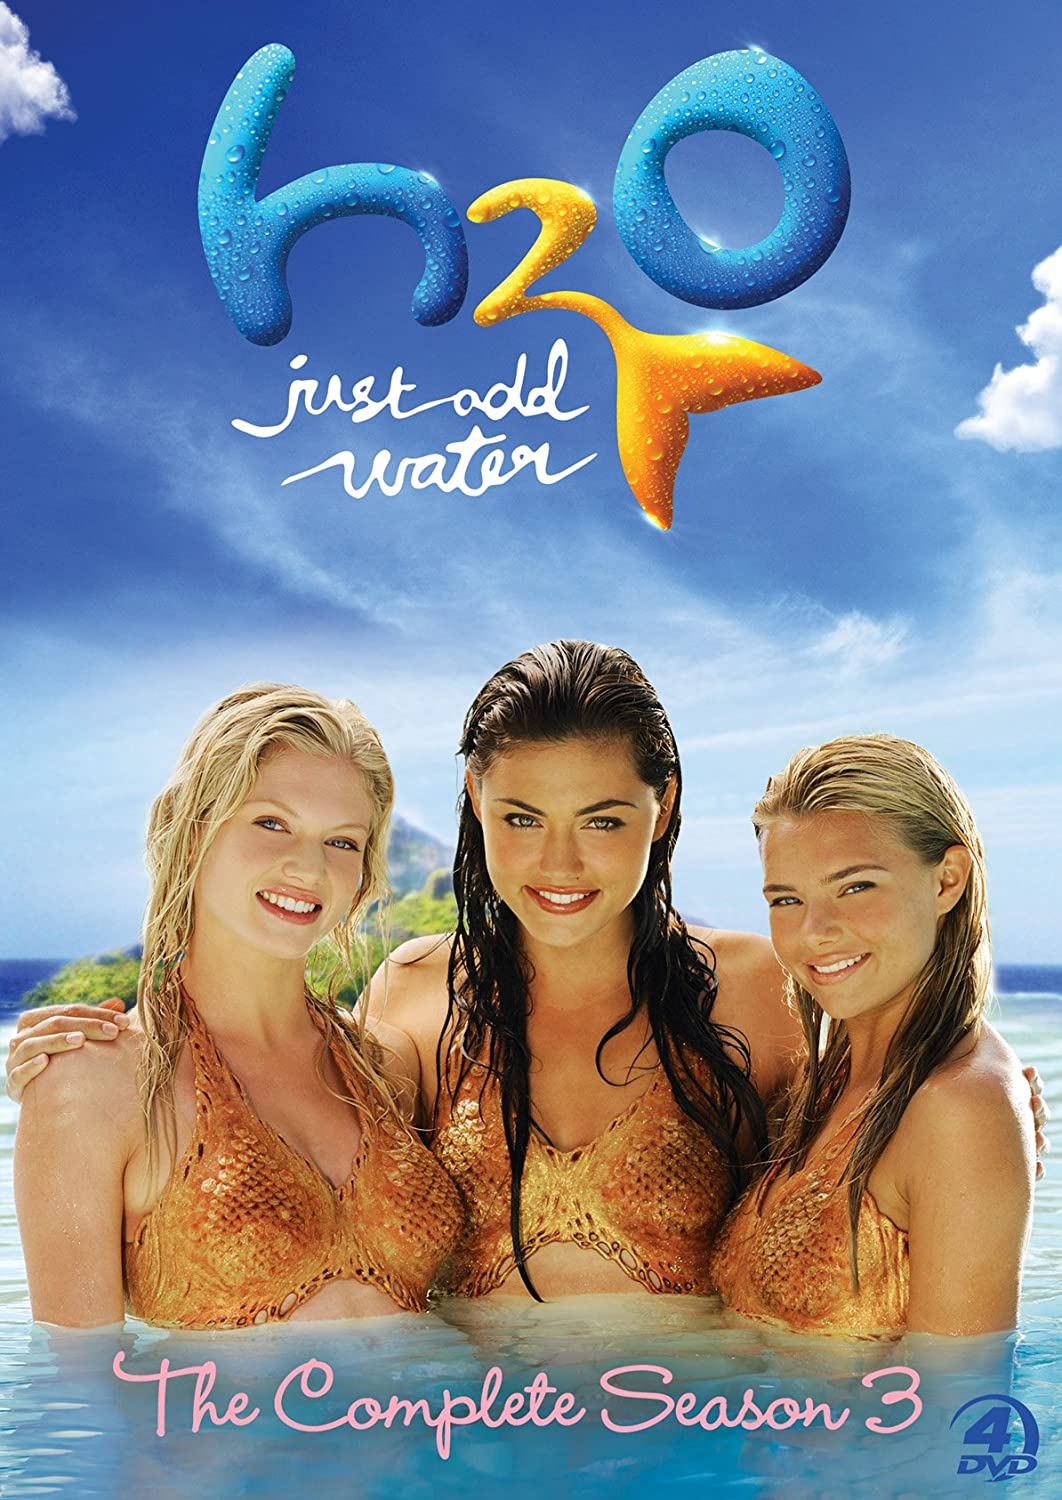 H2o: Just Add Water - The Complete Season 3 [DVD]: Amazon.es: Cine y Series TV